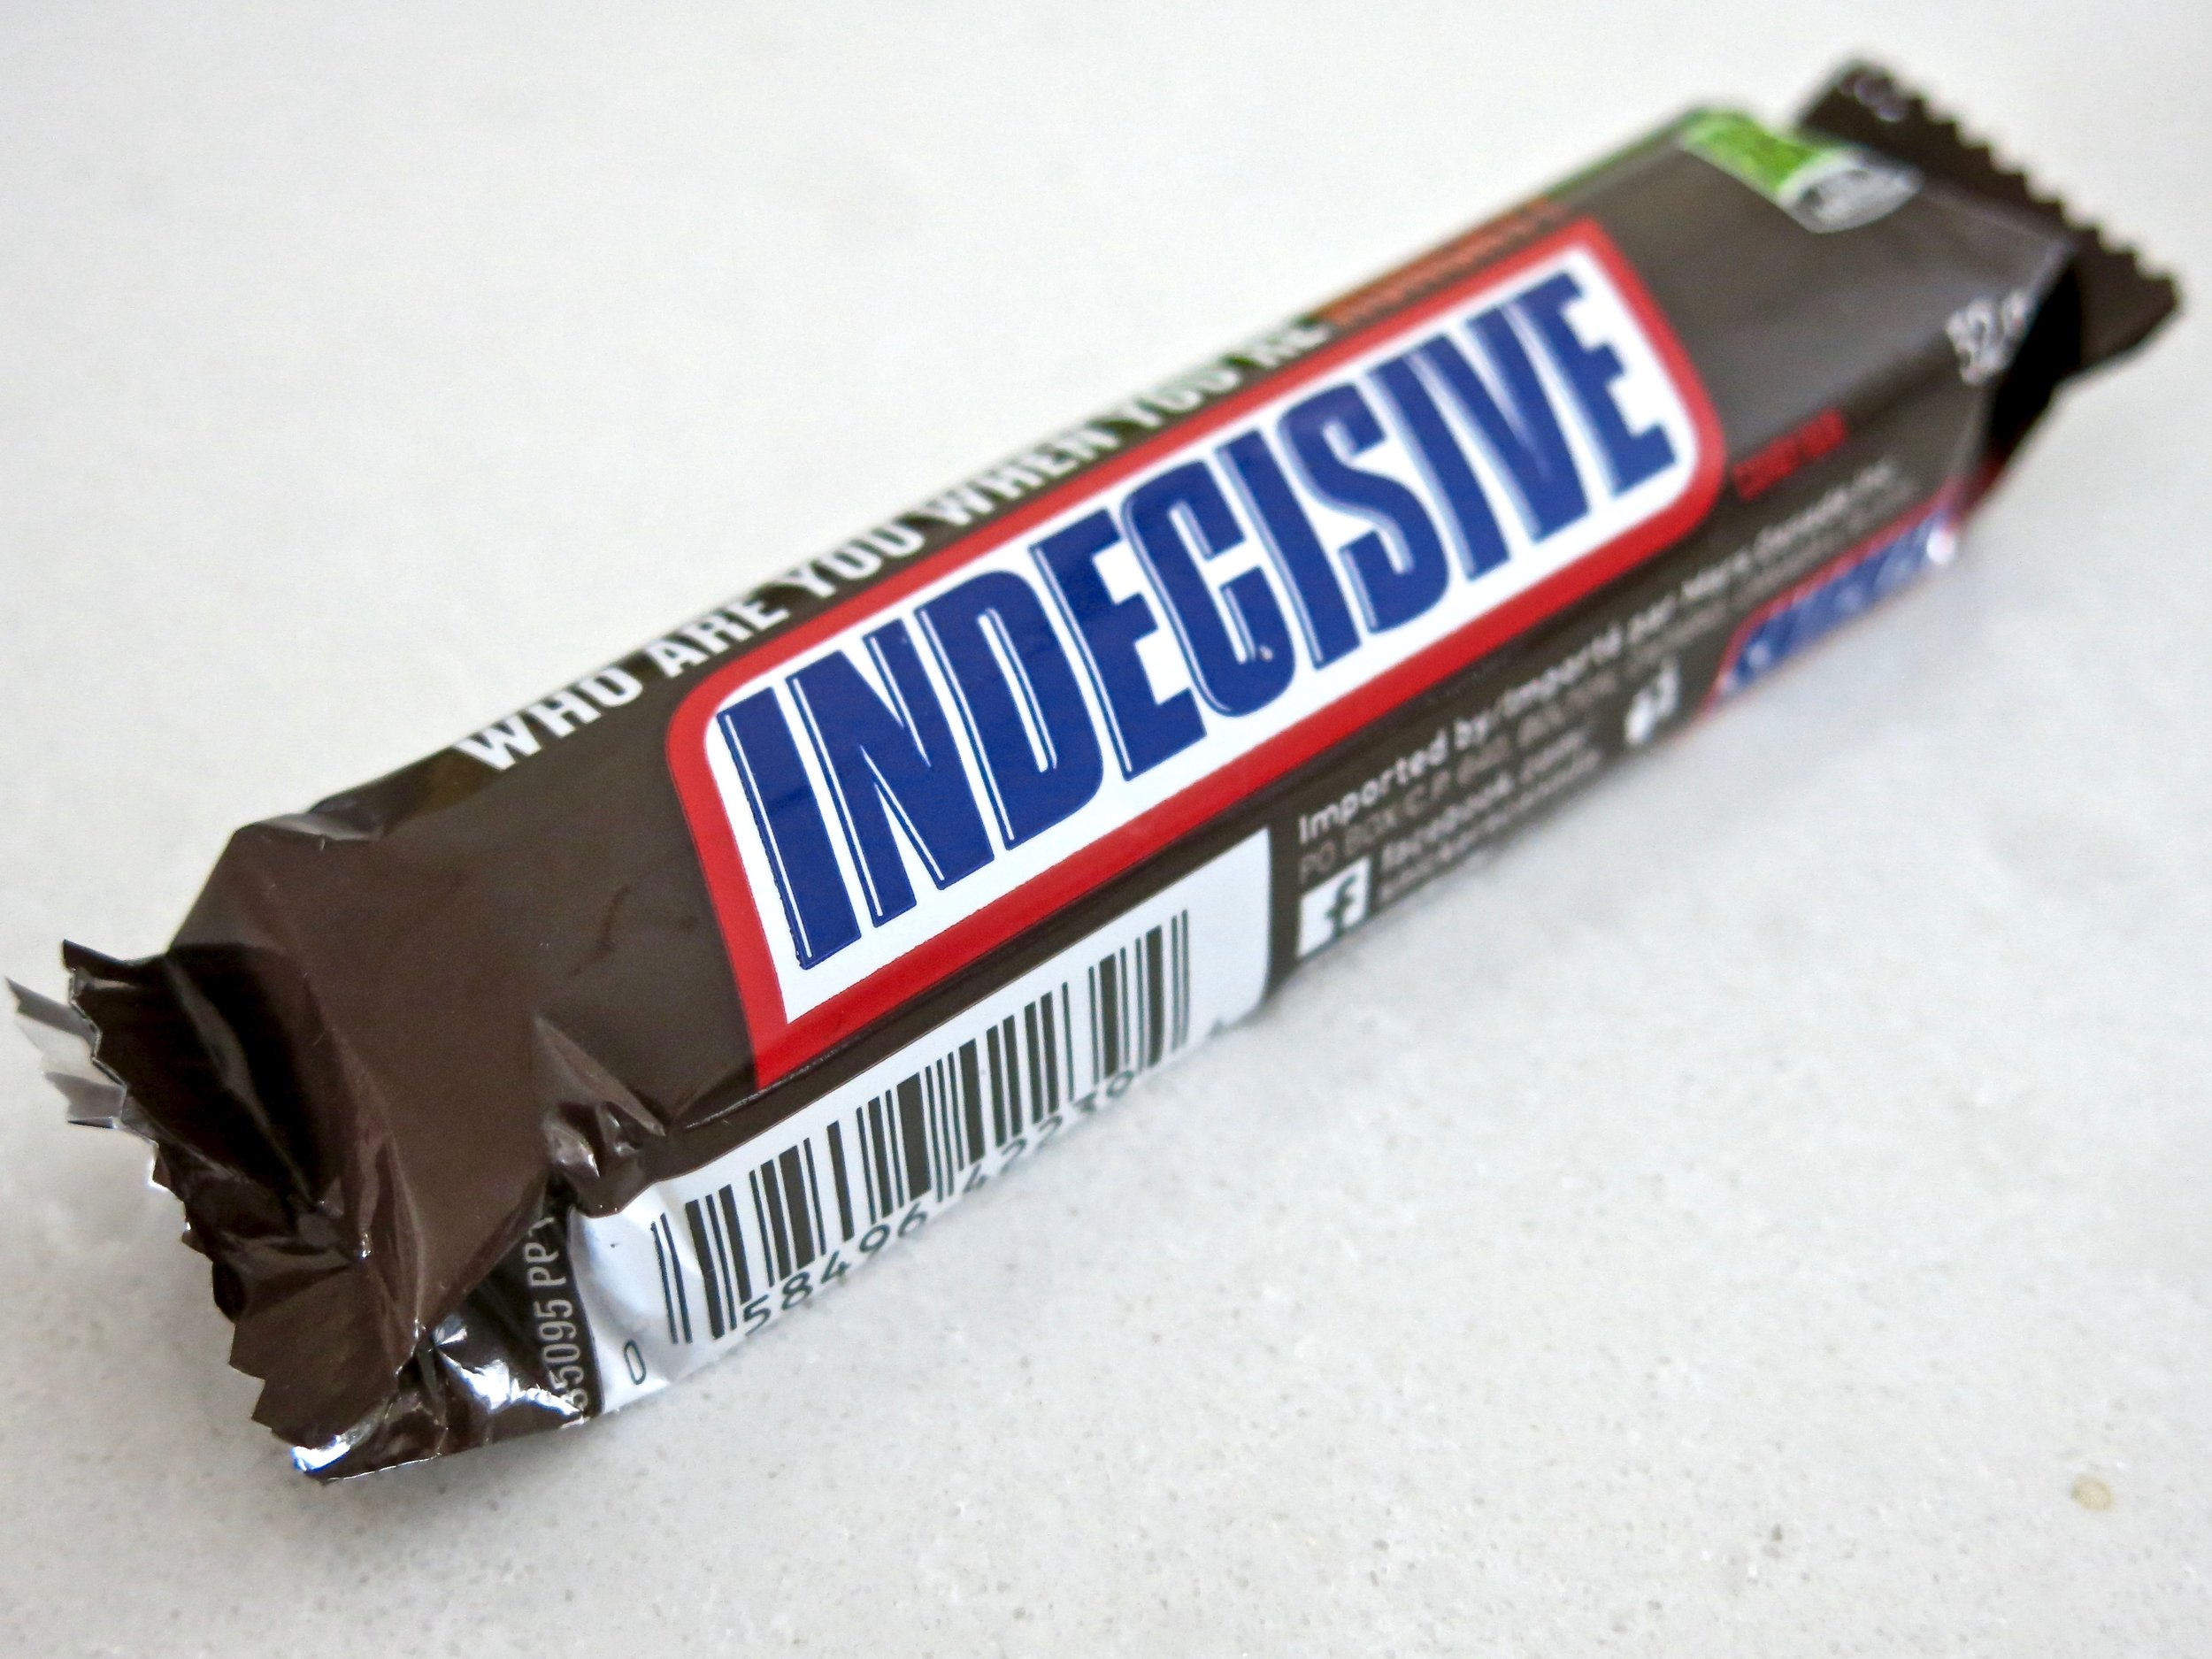 """This Snickers bar read """"Indecisive."""" I couldn't decide what that meant."""